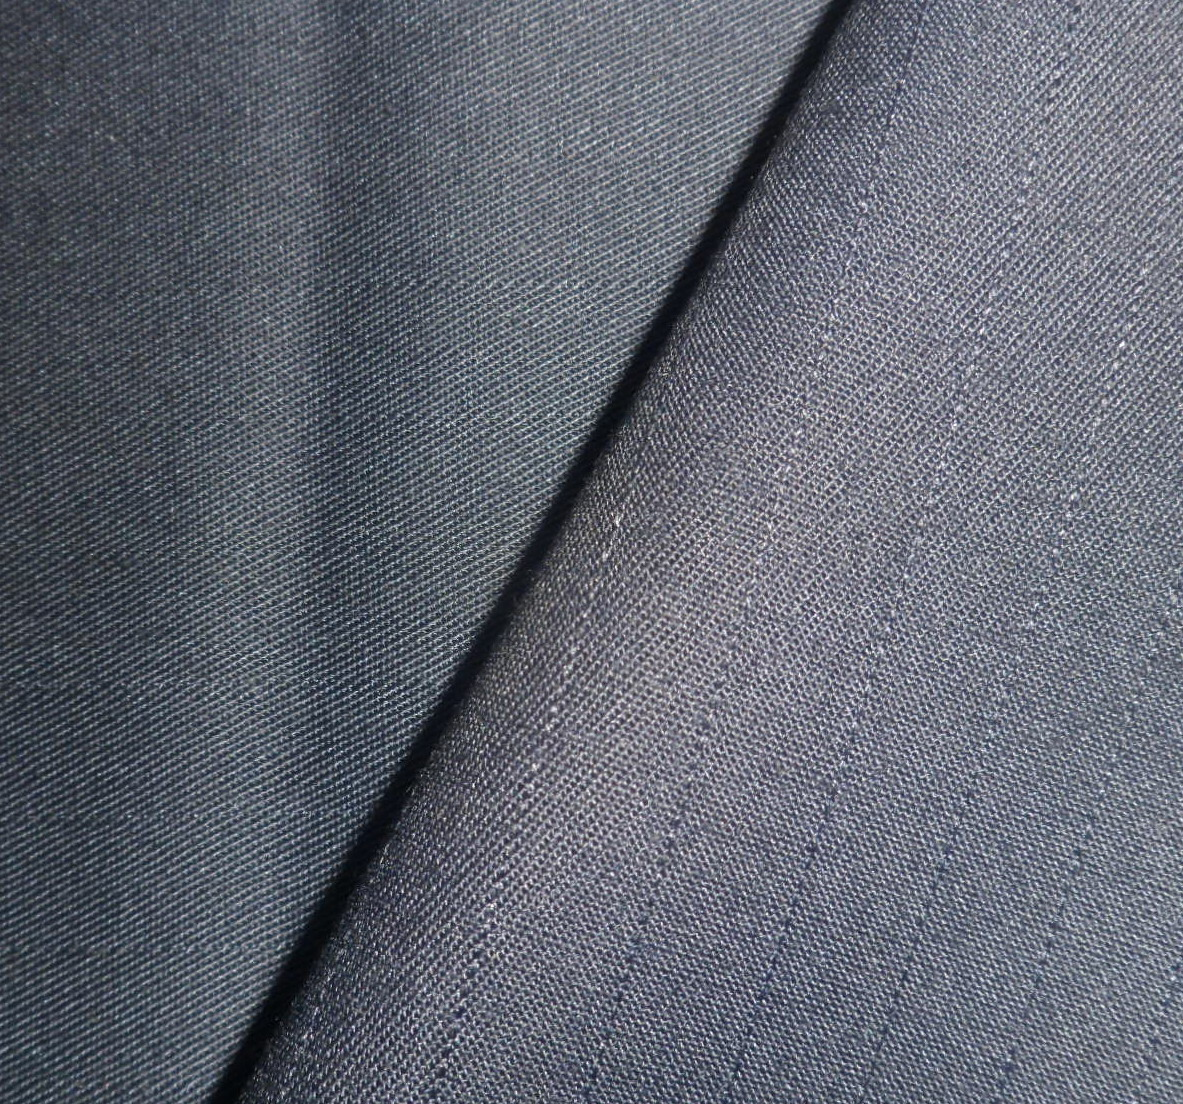 Anti Static Fabric : Antistatic fabric